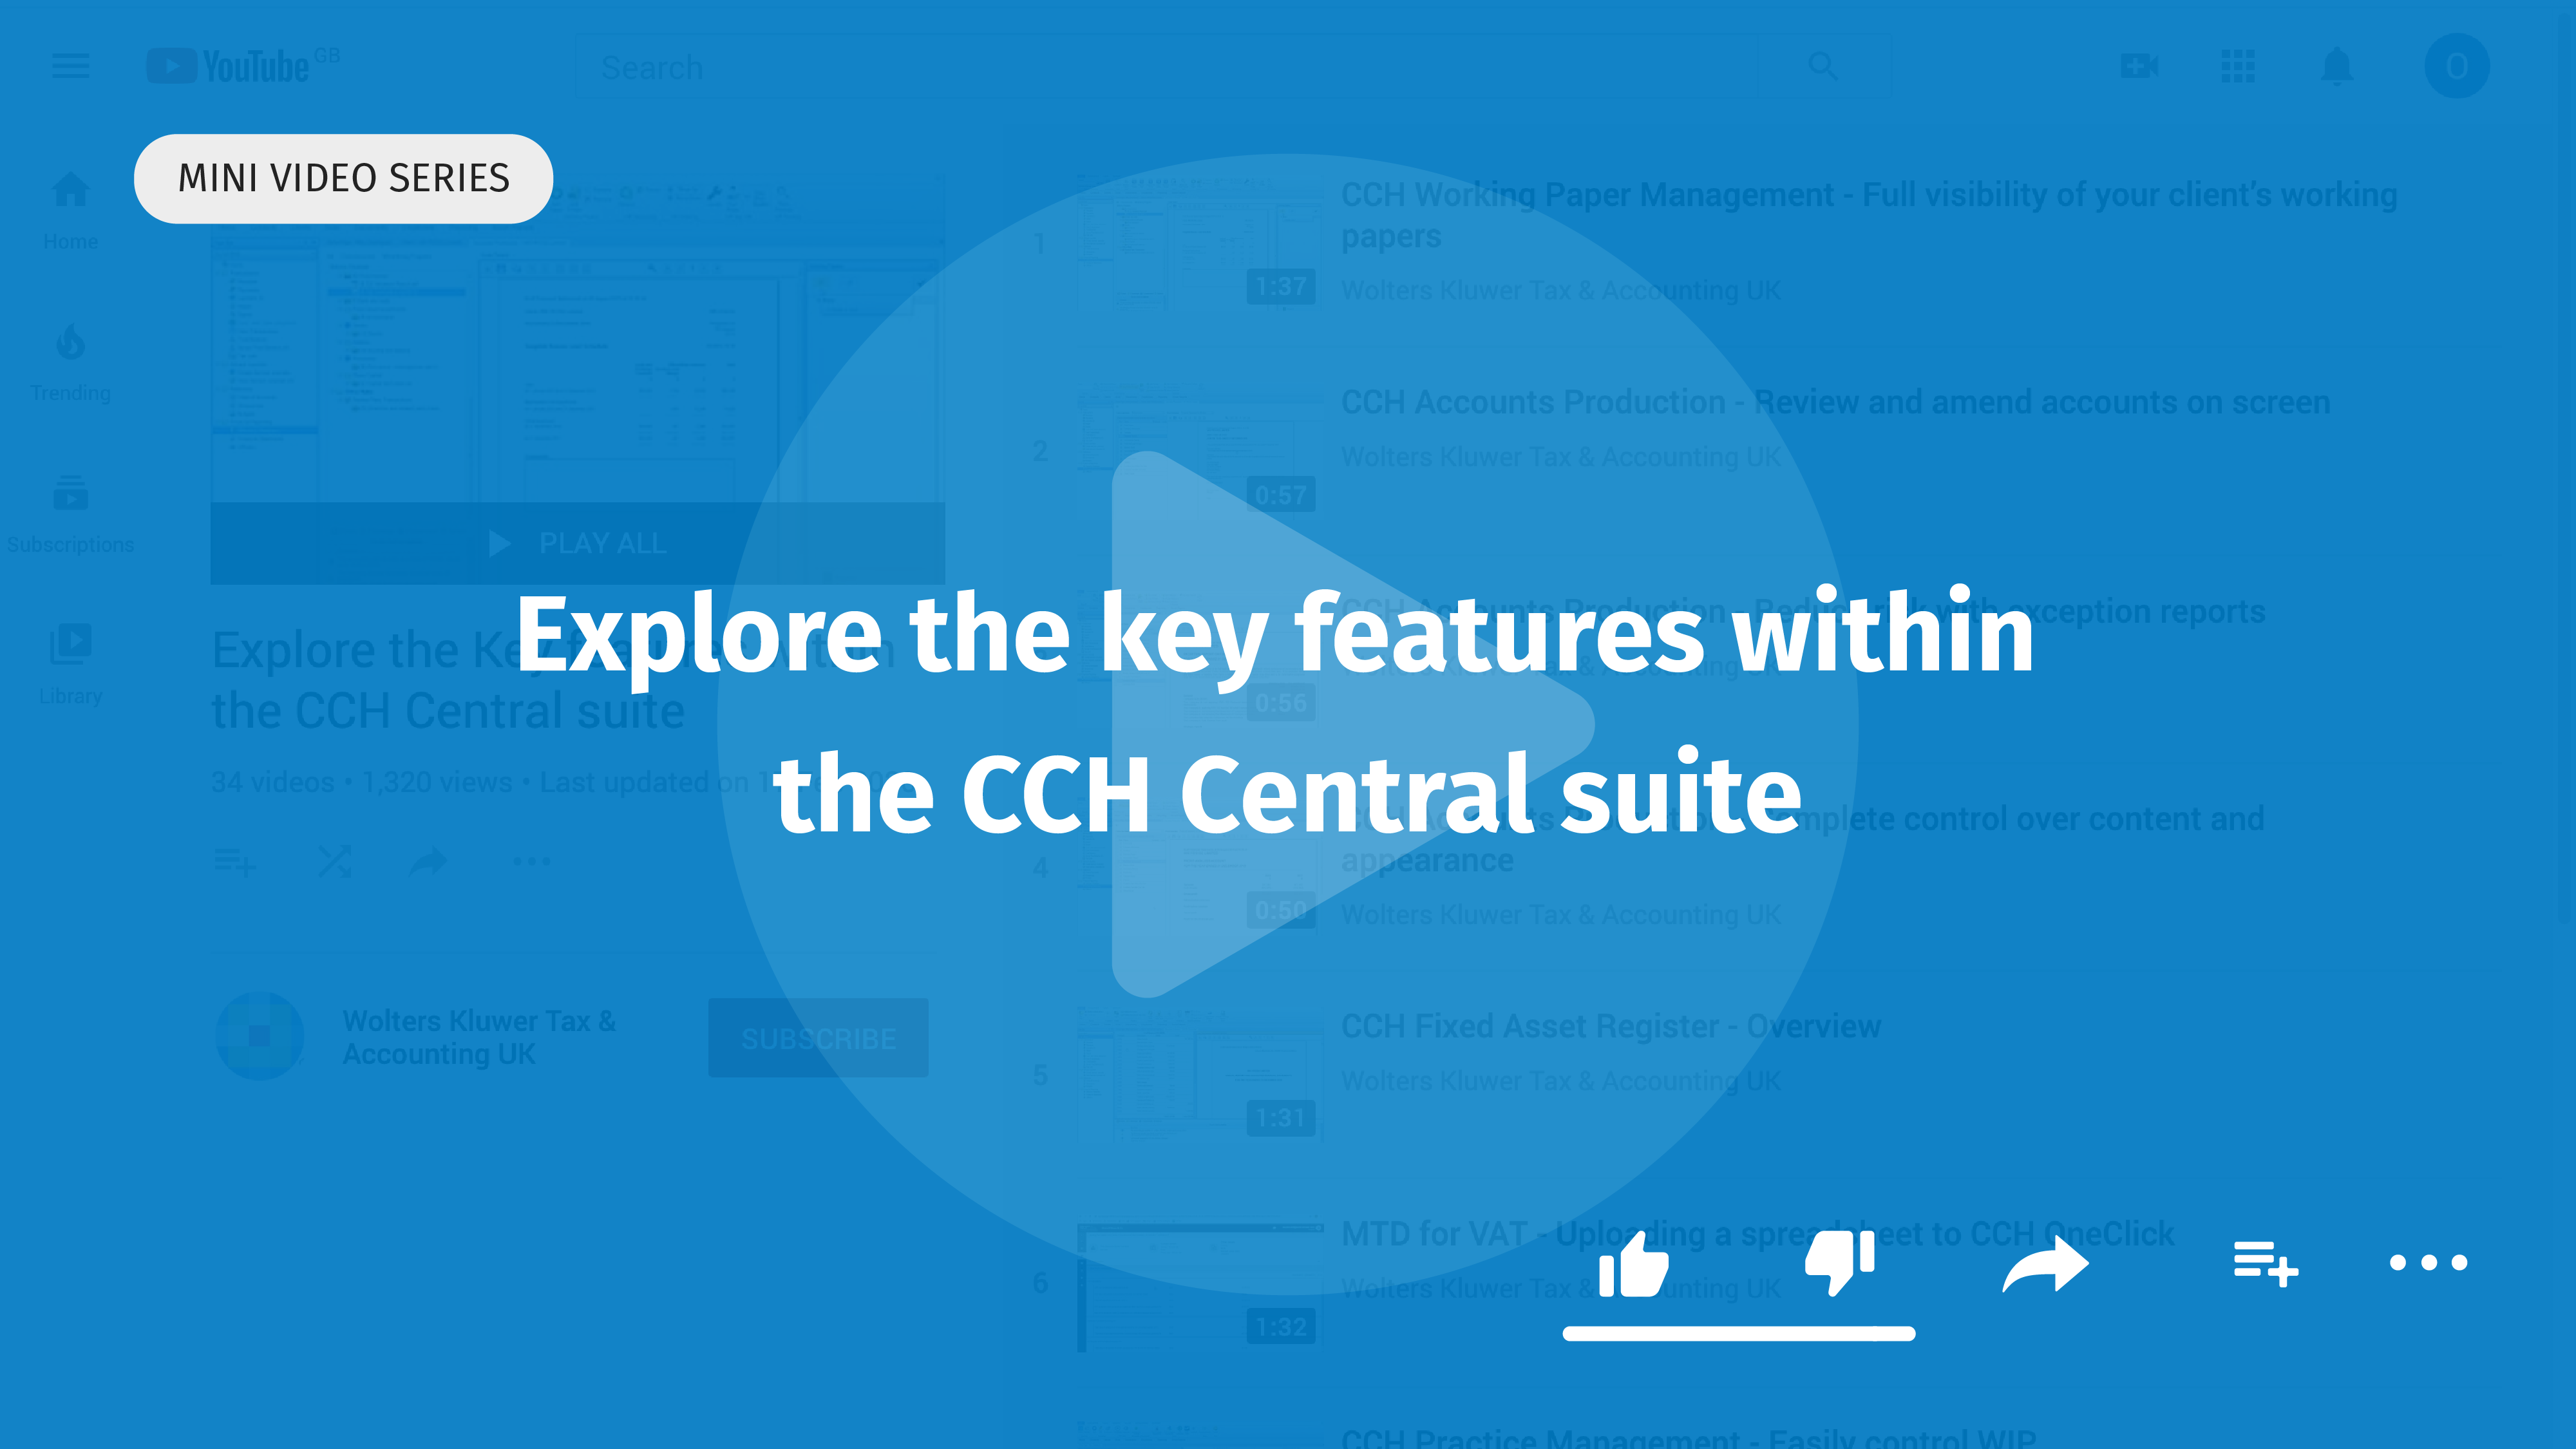 Explore the key features within the CCH Central suite